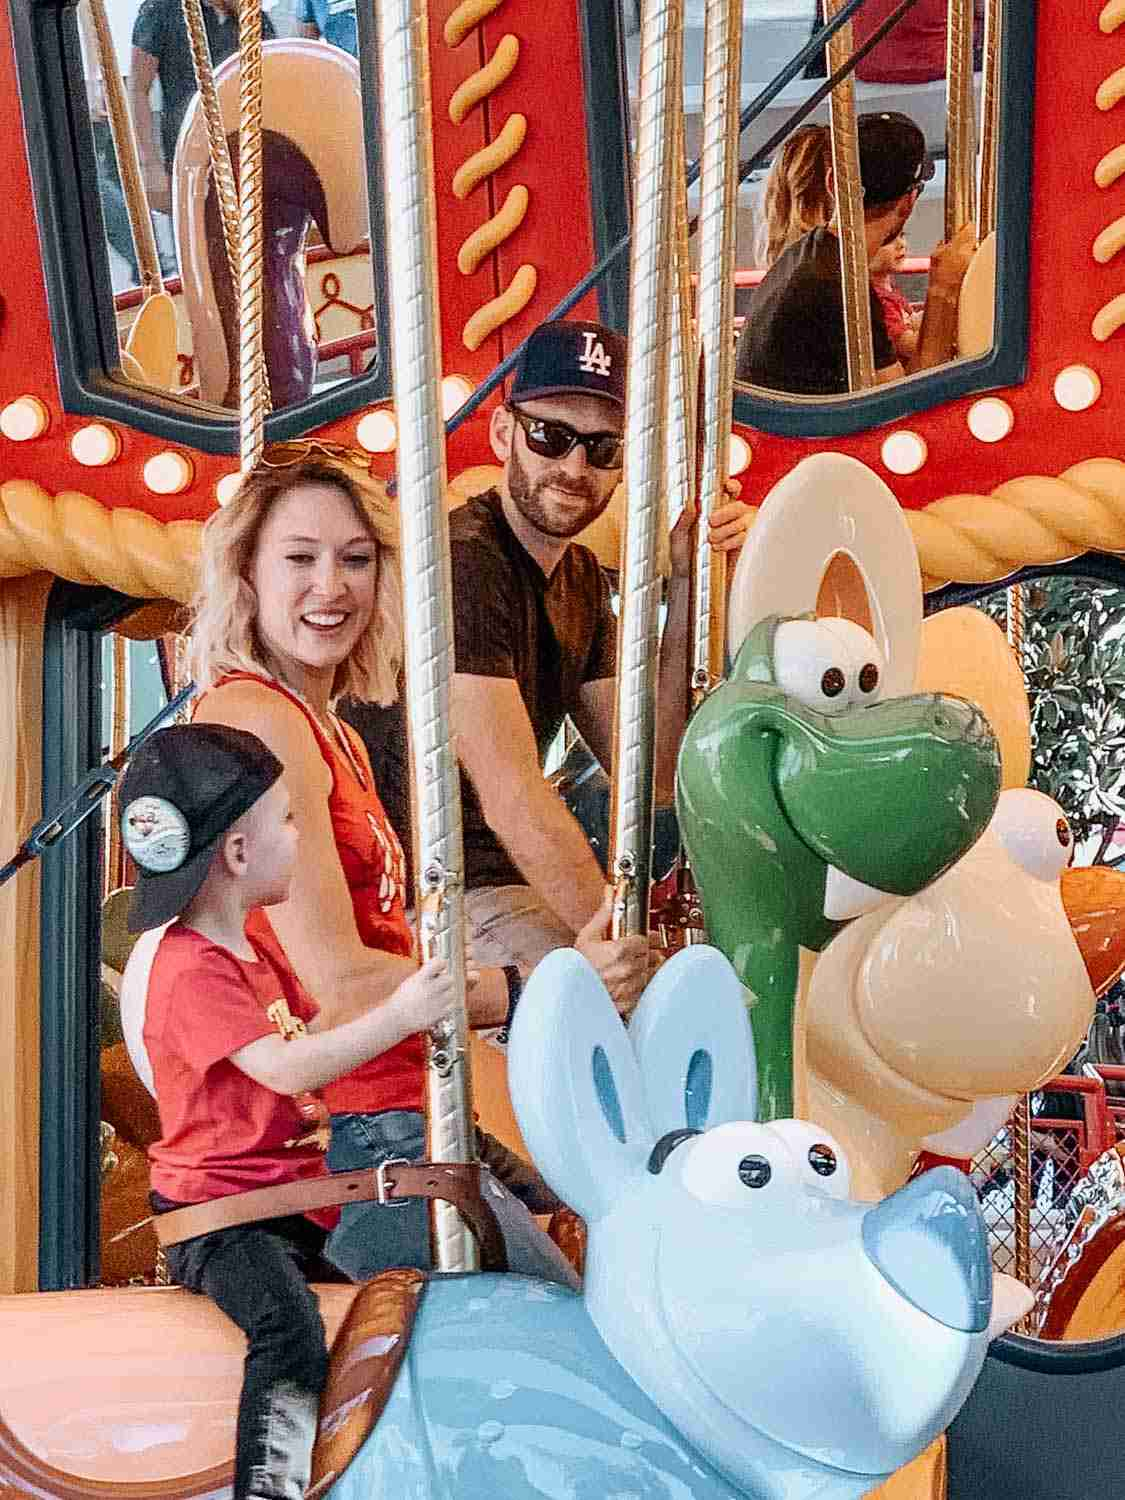 Family smiling at each other while riding on Jessie's Critter Carousel at Disney's California Adventure